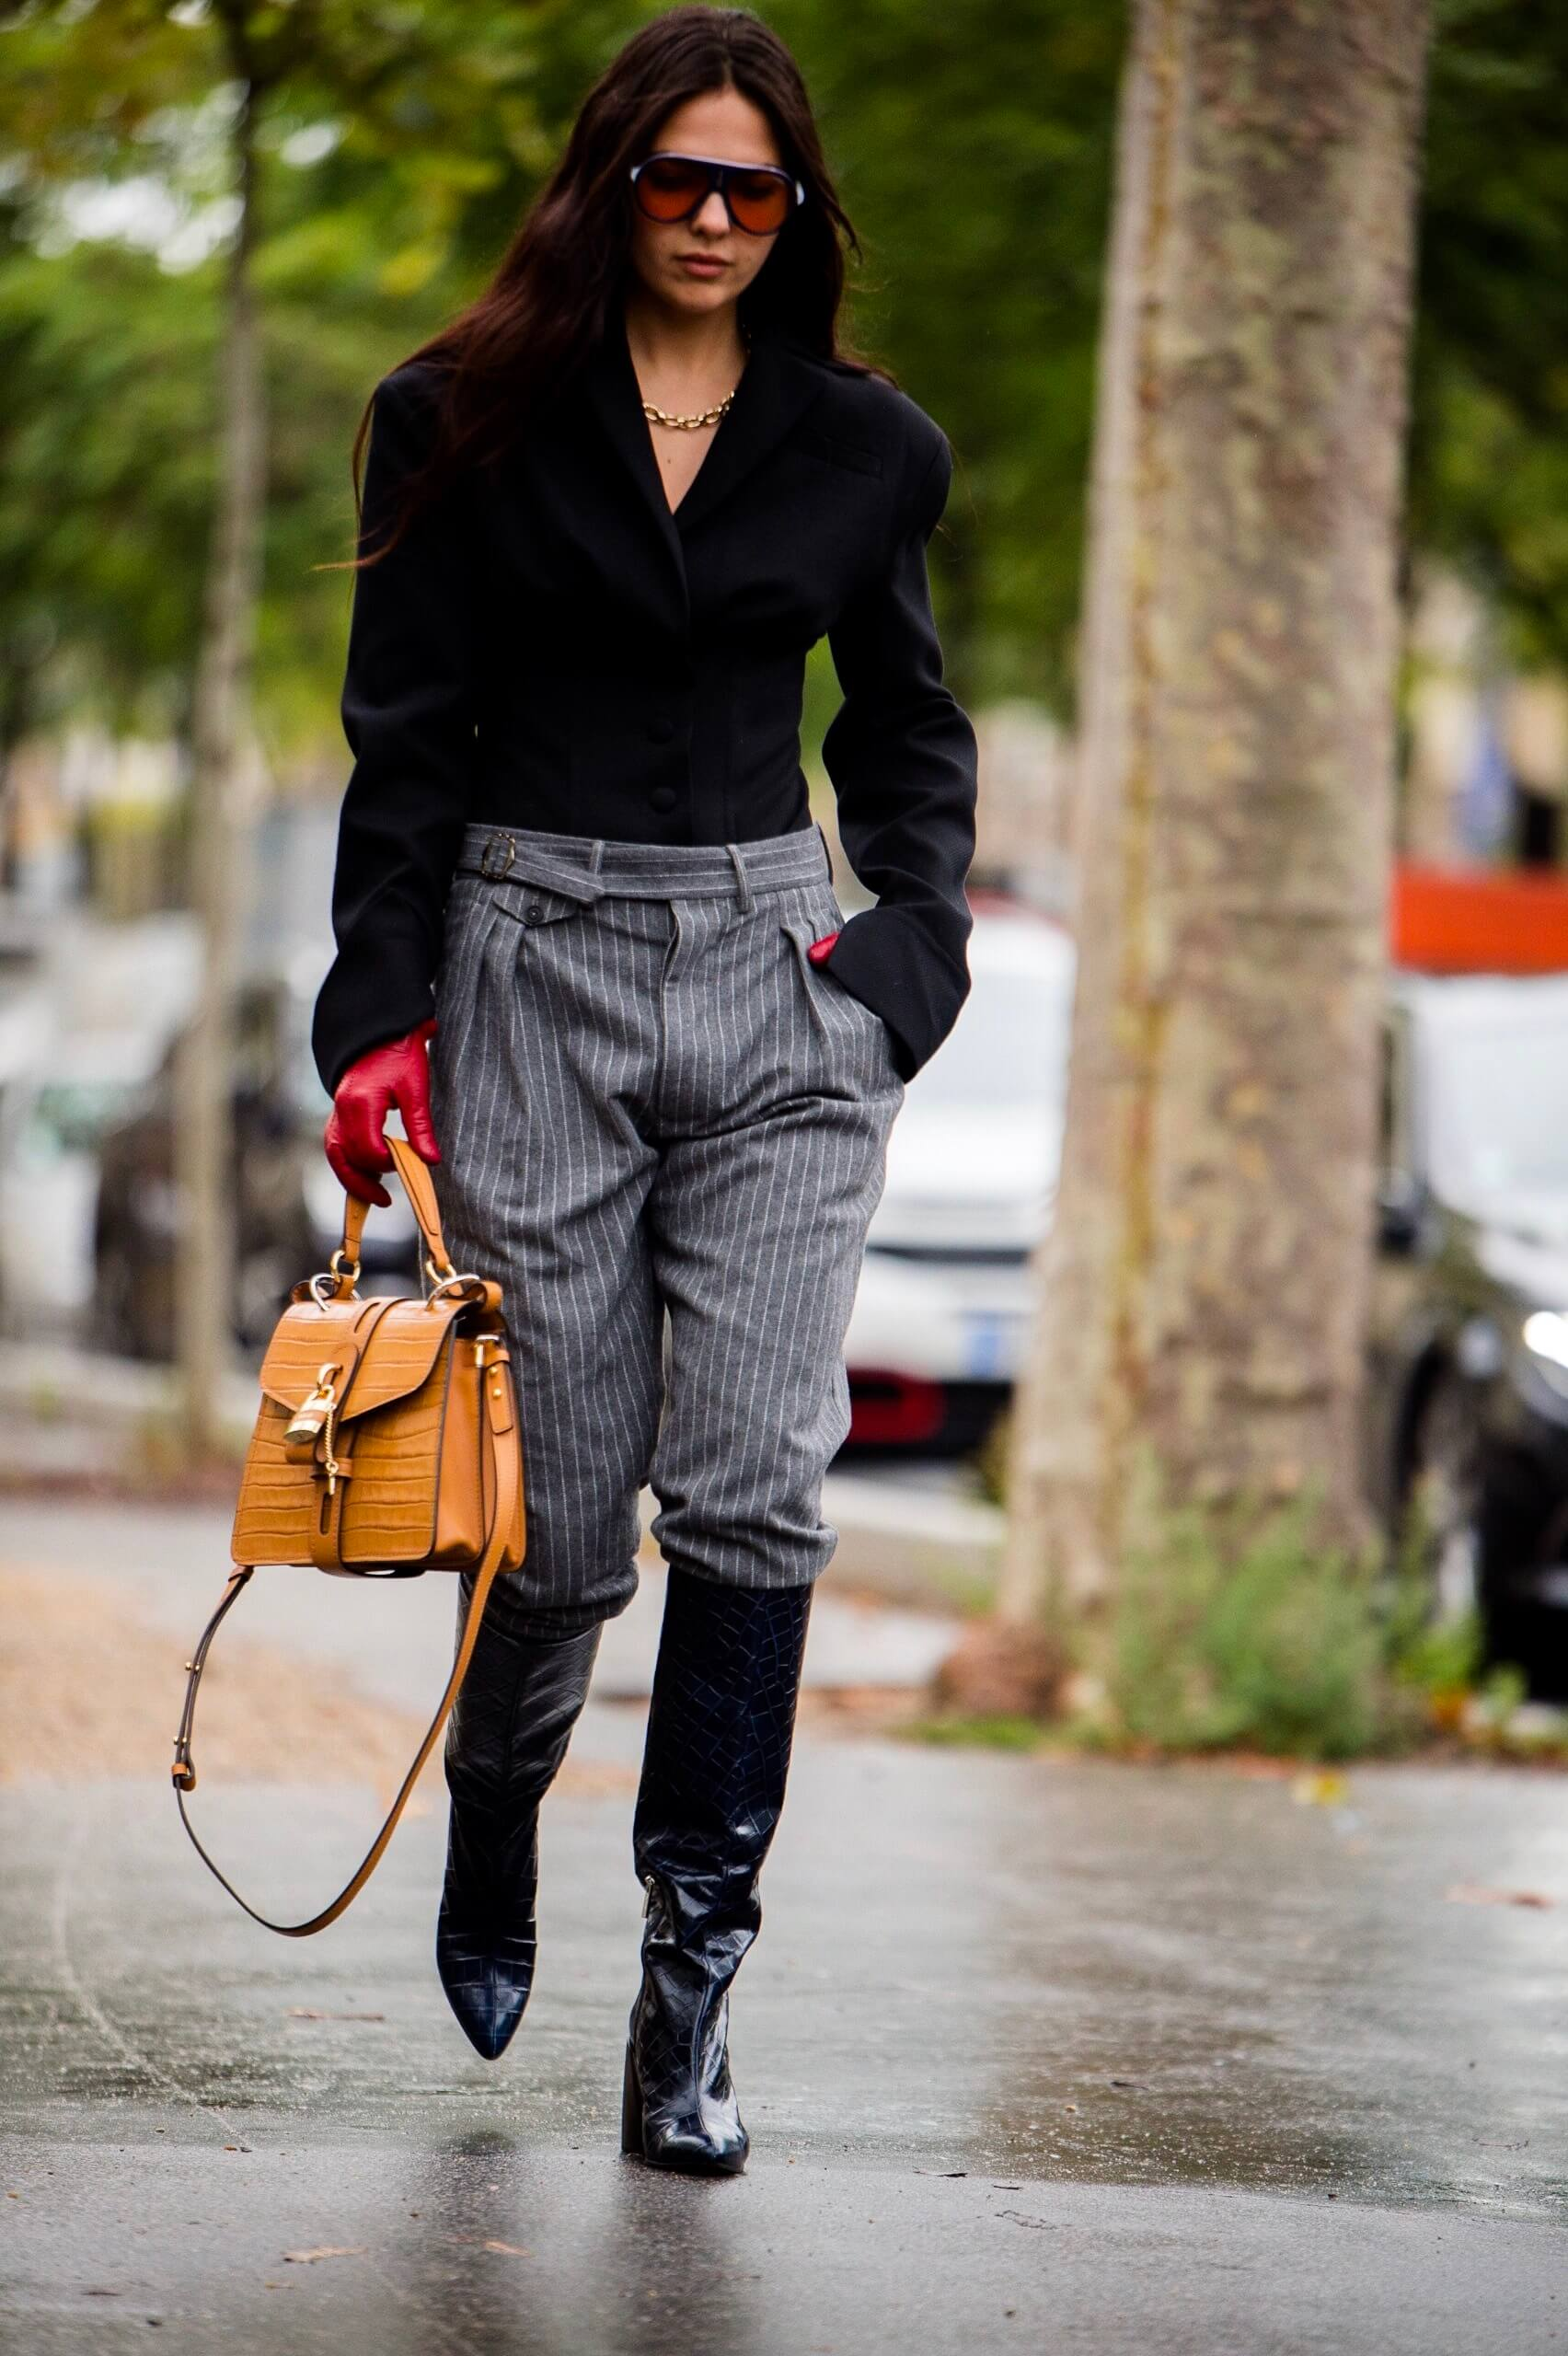 Bold, edgy styles from Mercedes-Benz Fashion Week